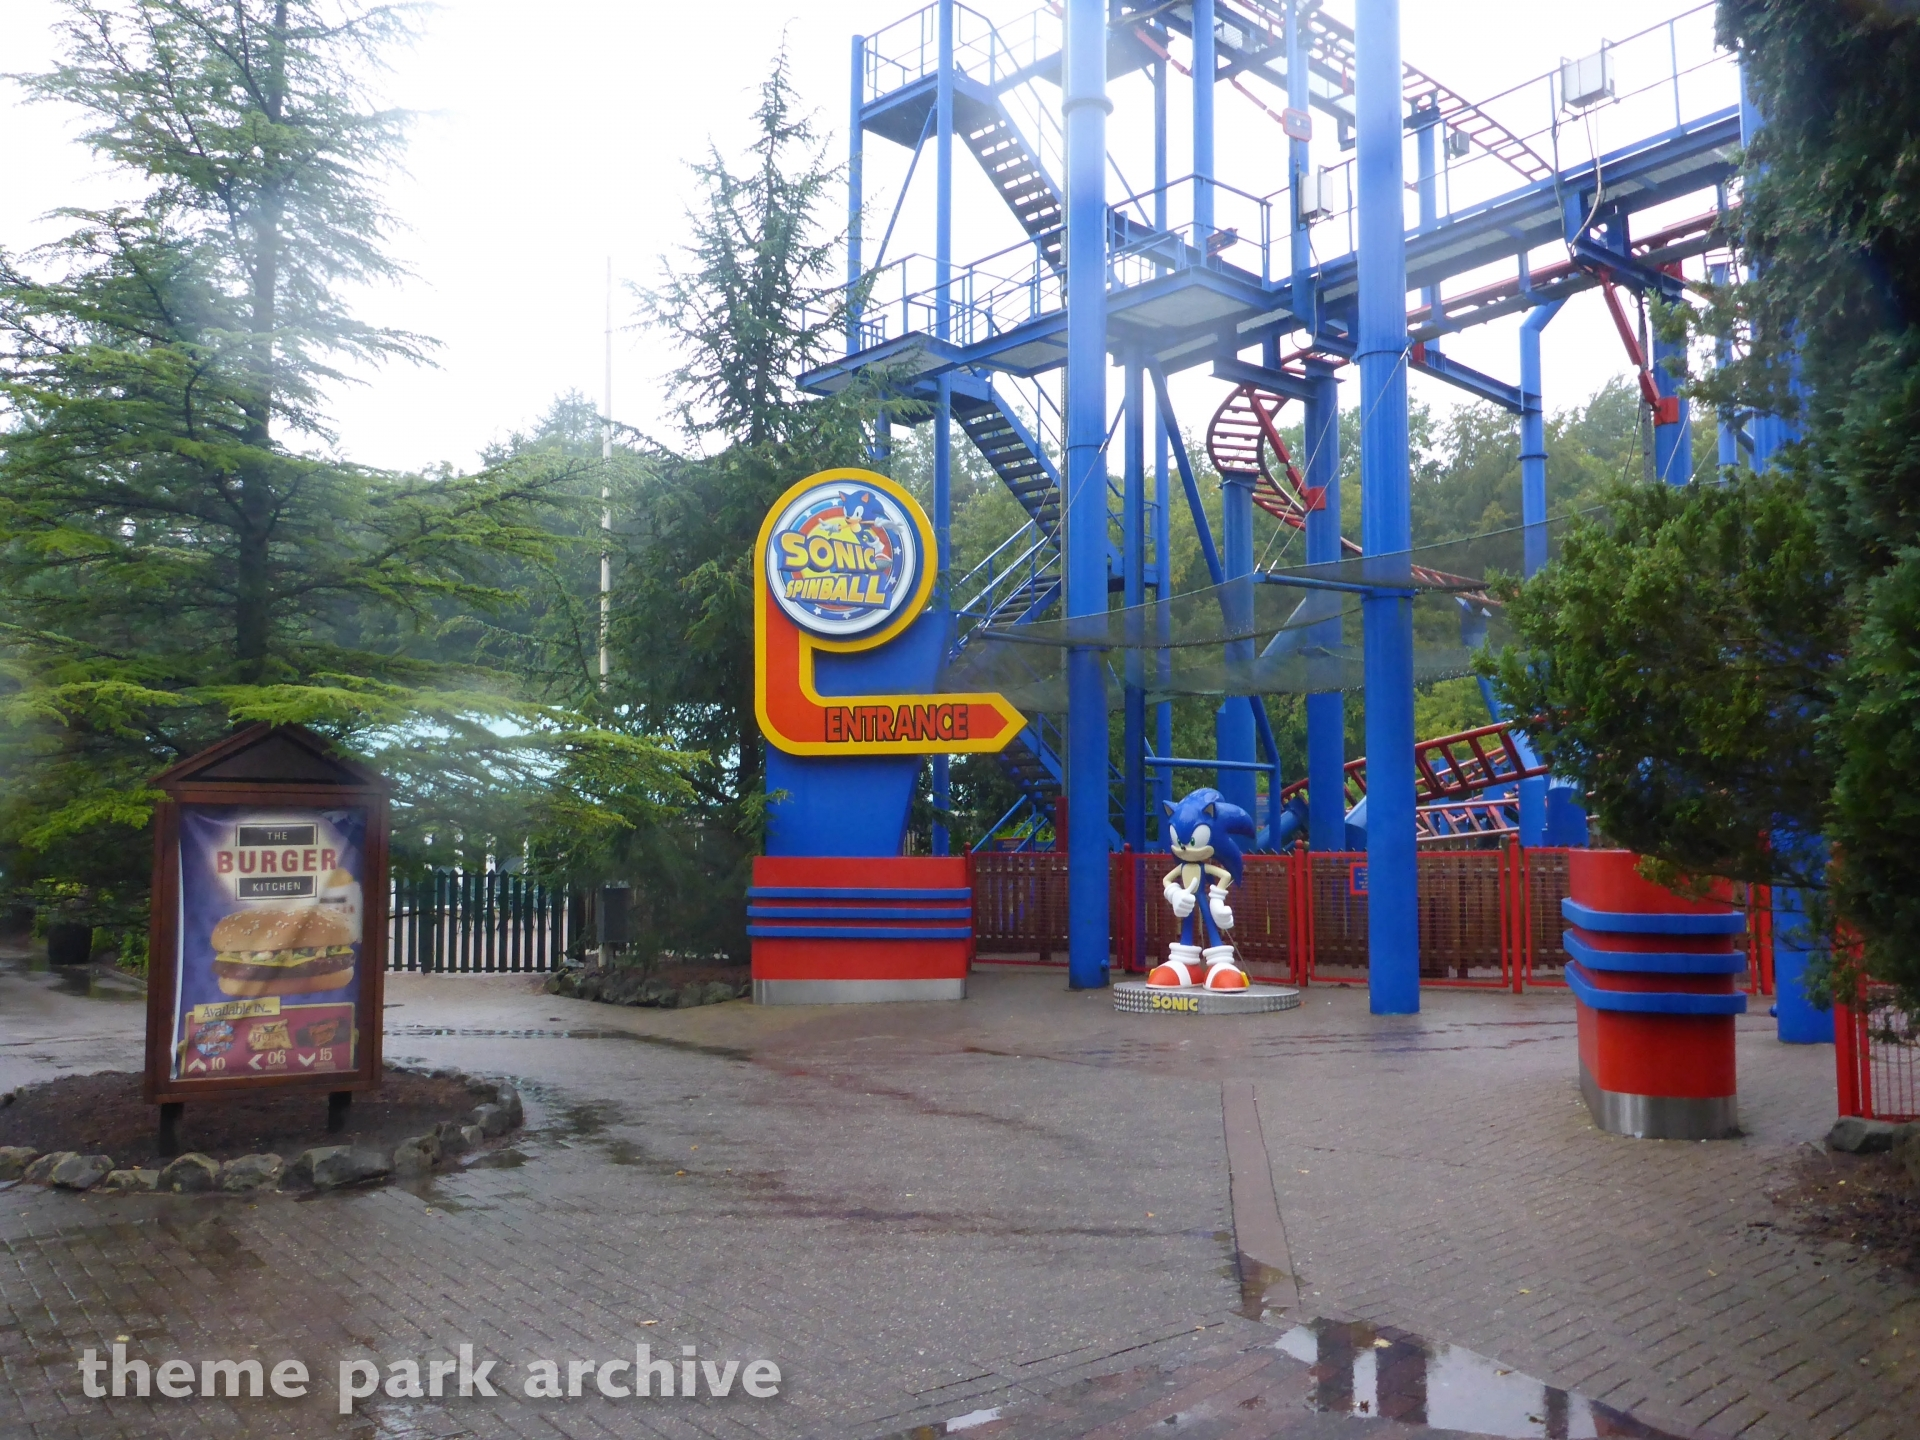 Sonic Spinball at Alton Towers